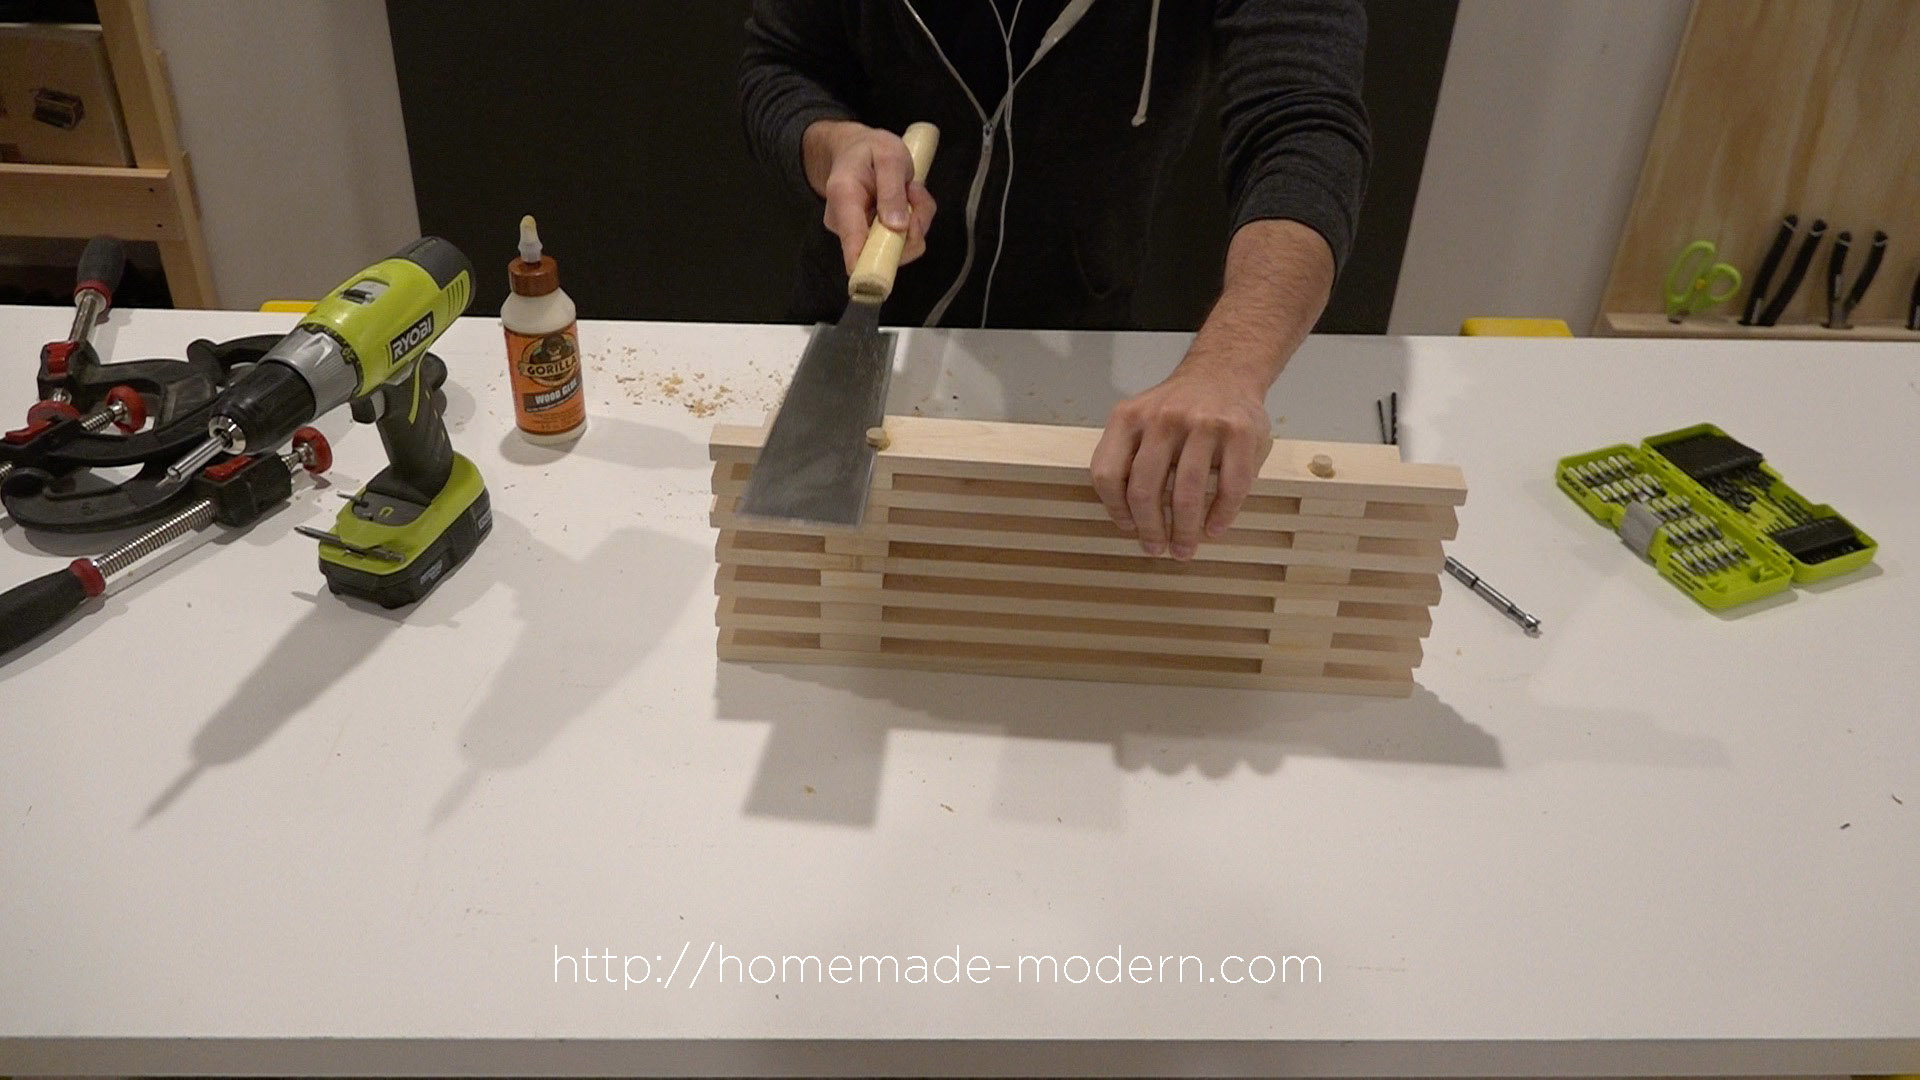 This DIY Dish Rack is designed to fit over a sink. Full instructions can be found at HomeMade-Modern.com